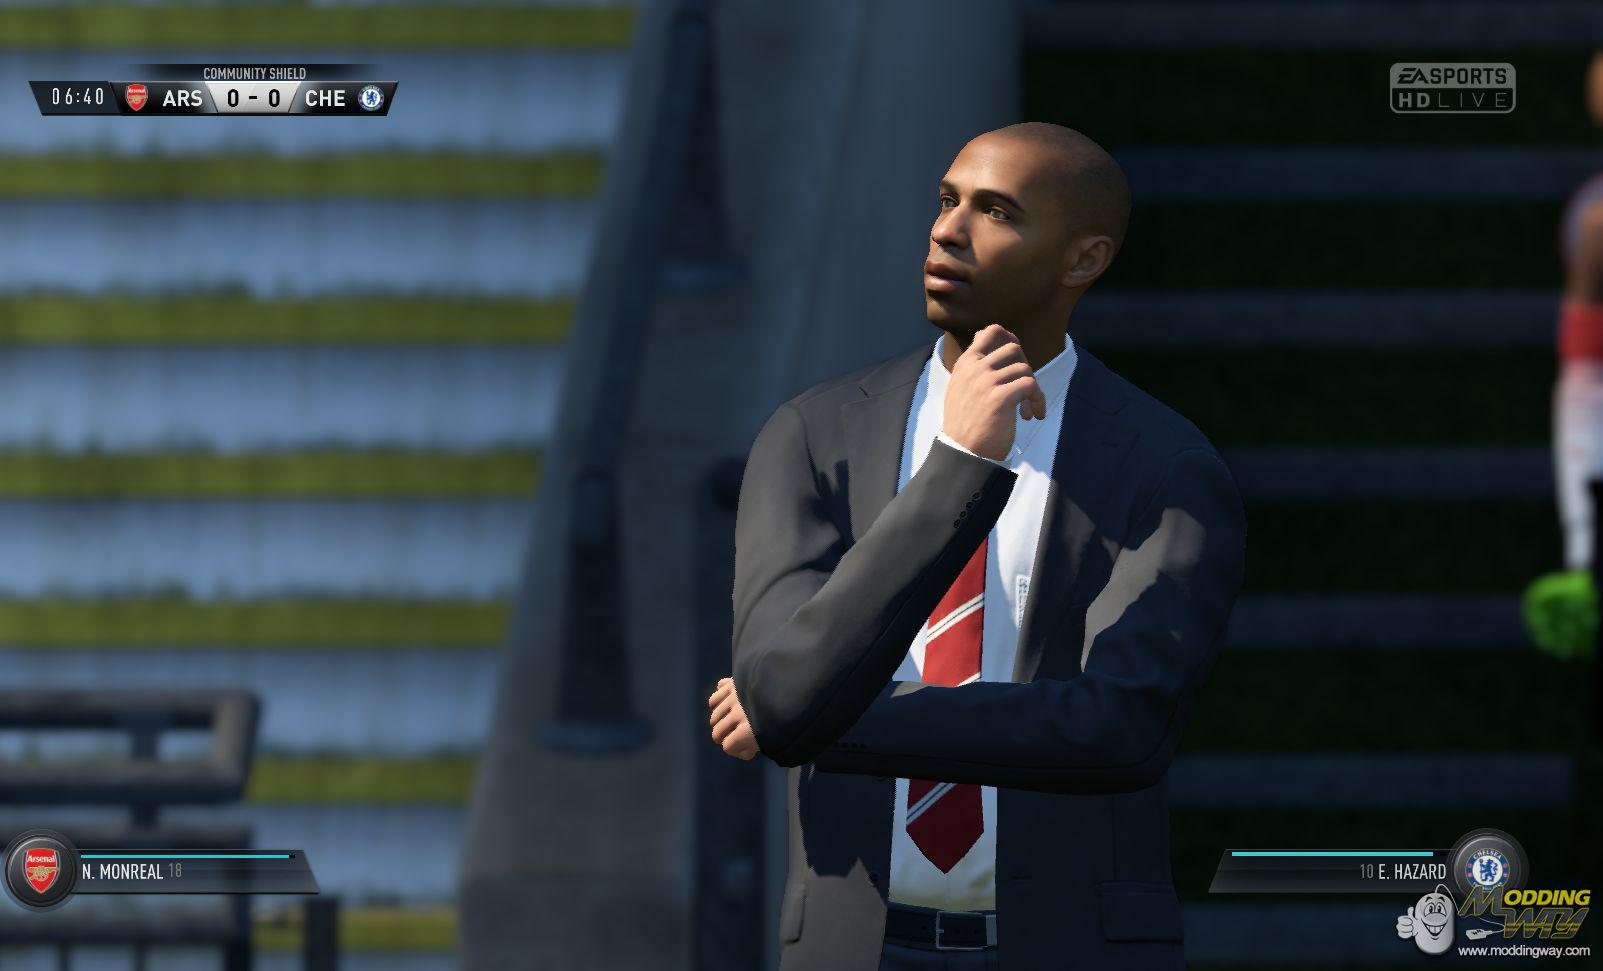 Arsenal legend Thierry Henry playing as a manager in Career Mode